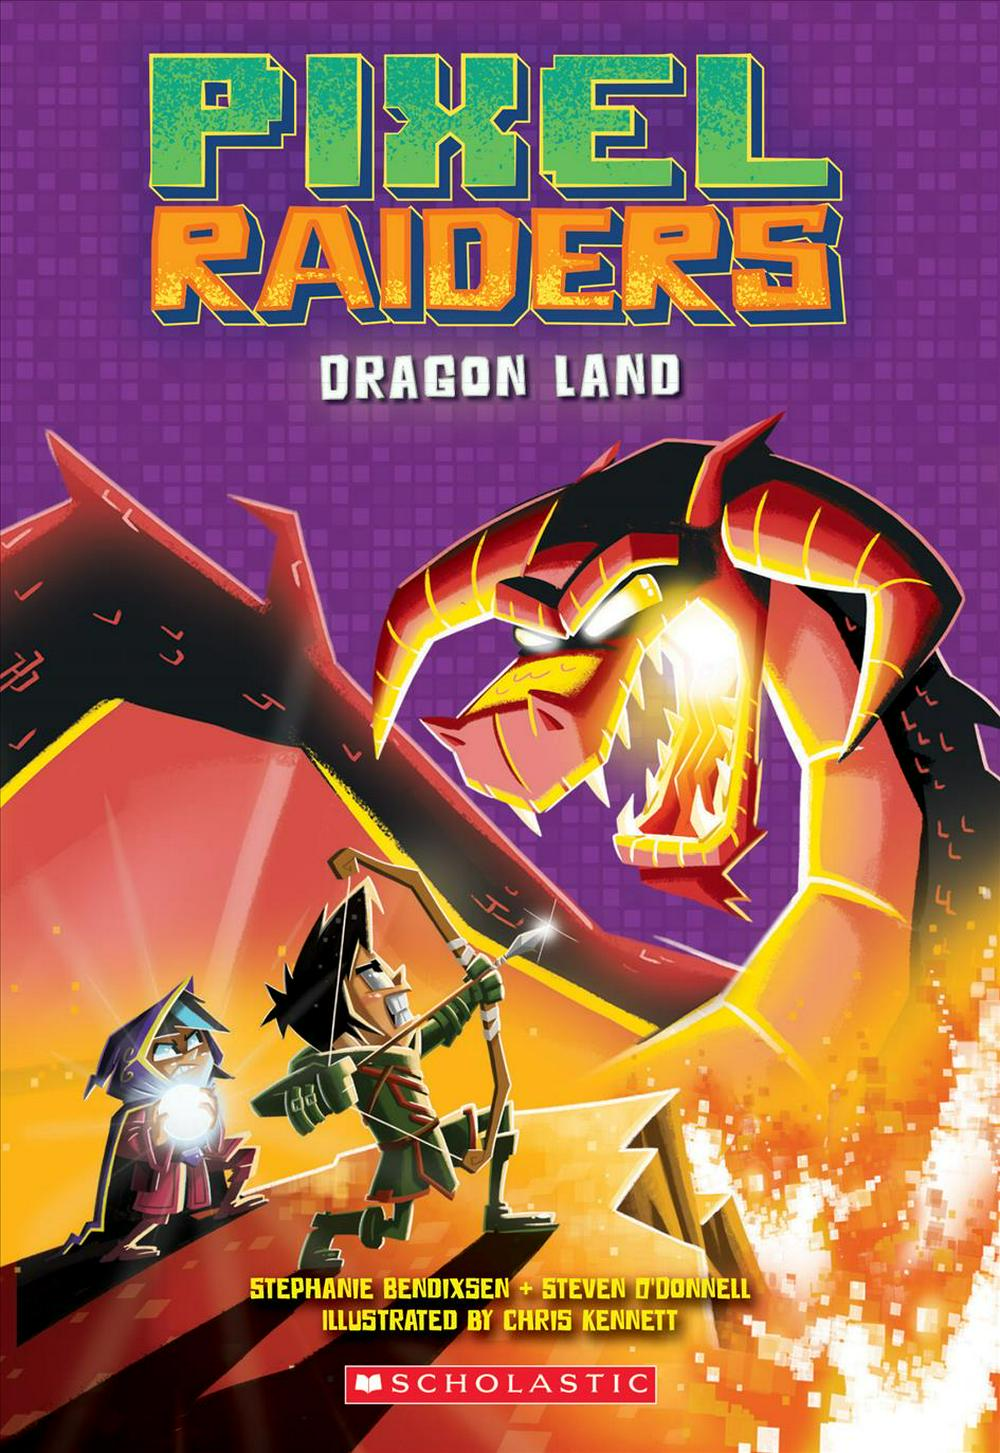 Dragon Land (Pixel Raiders #2)